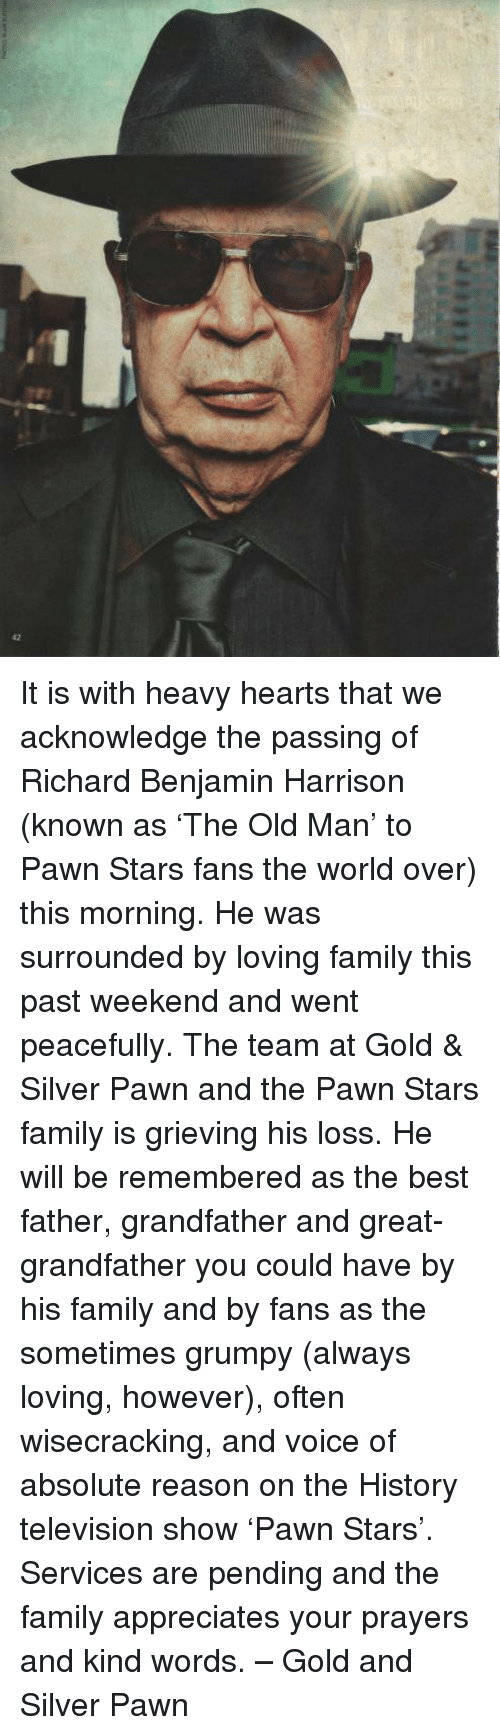 richard benjamin: 42 It is with heavy hearts that we acknowledge the passing of Richard Benjamin Harrison (known as 'The Old Man' to Pawn Stars fans the world over) this morning.  He was surrounded by loving family this past weekend and went peacefully.  The team at Gold & Silver Pawn and the Pawn Stars family is grieving his loss.  He will be remembered as the best father, grandfather and great-grandfather you could have by his family and by fans as the sometimes grumpy (always loving, however), often wisecracking, and voice of absolute reason on the History television show 'Pawn Stars'.  Services are pending and the family appreciates your prayers and kind words. – Gold and Silver Pawn